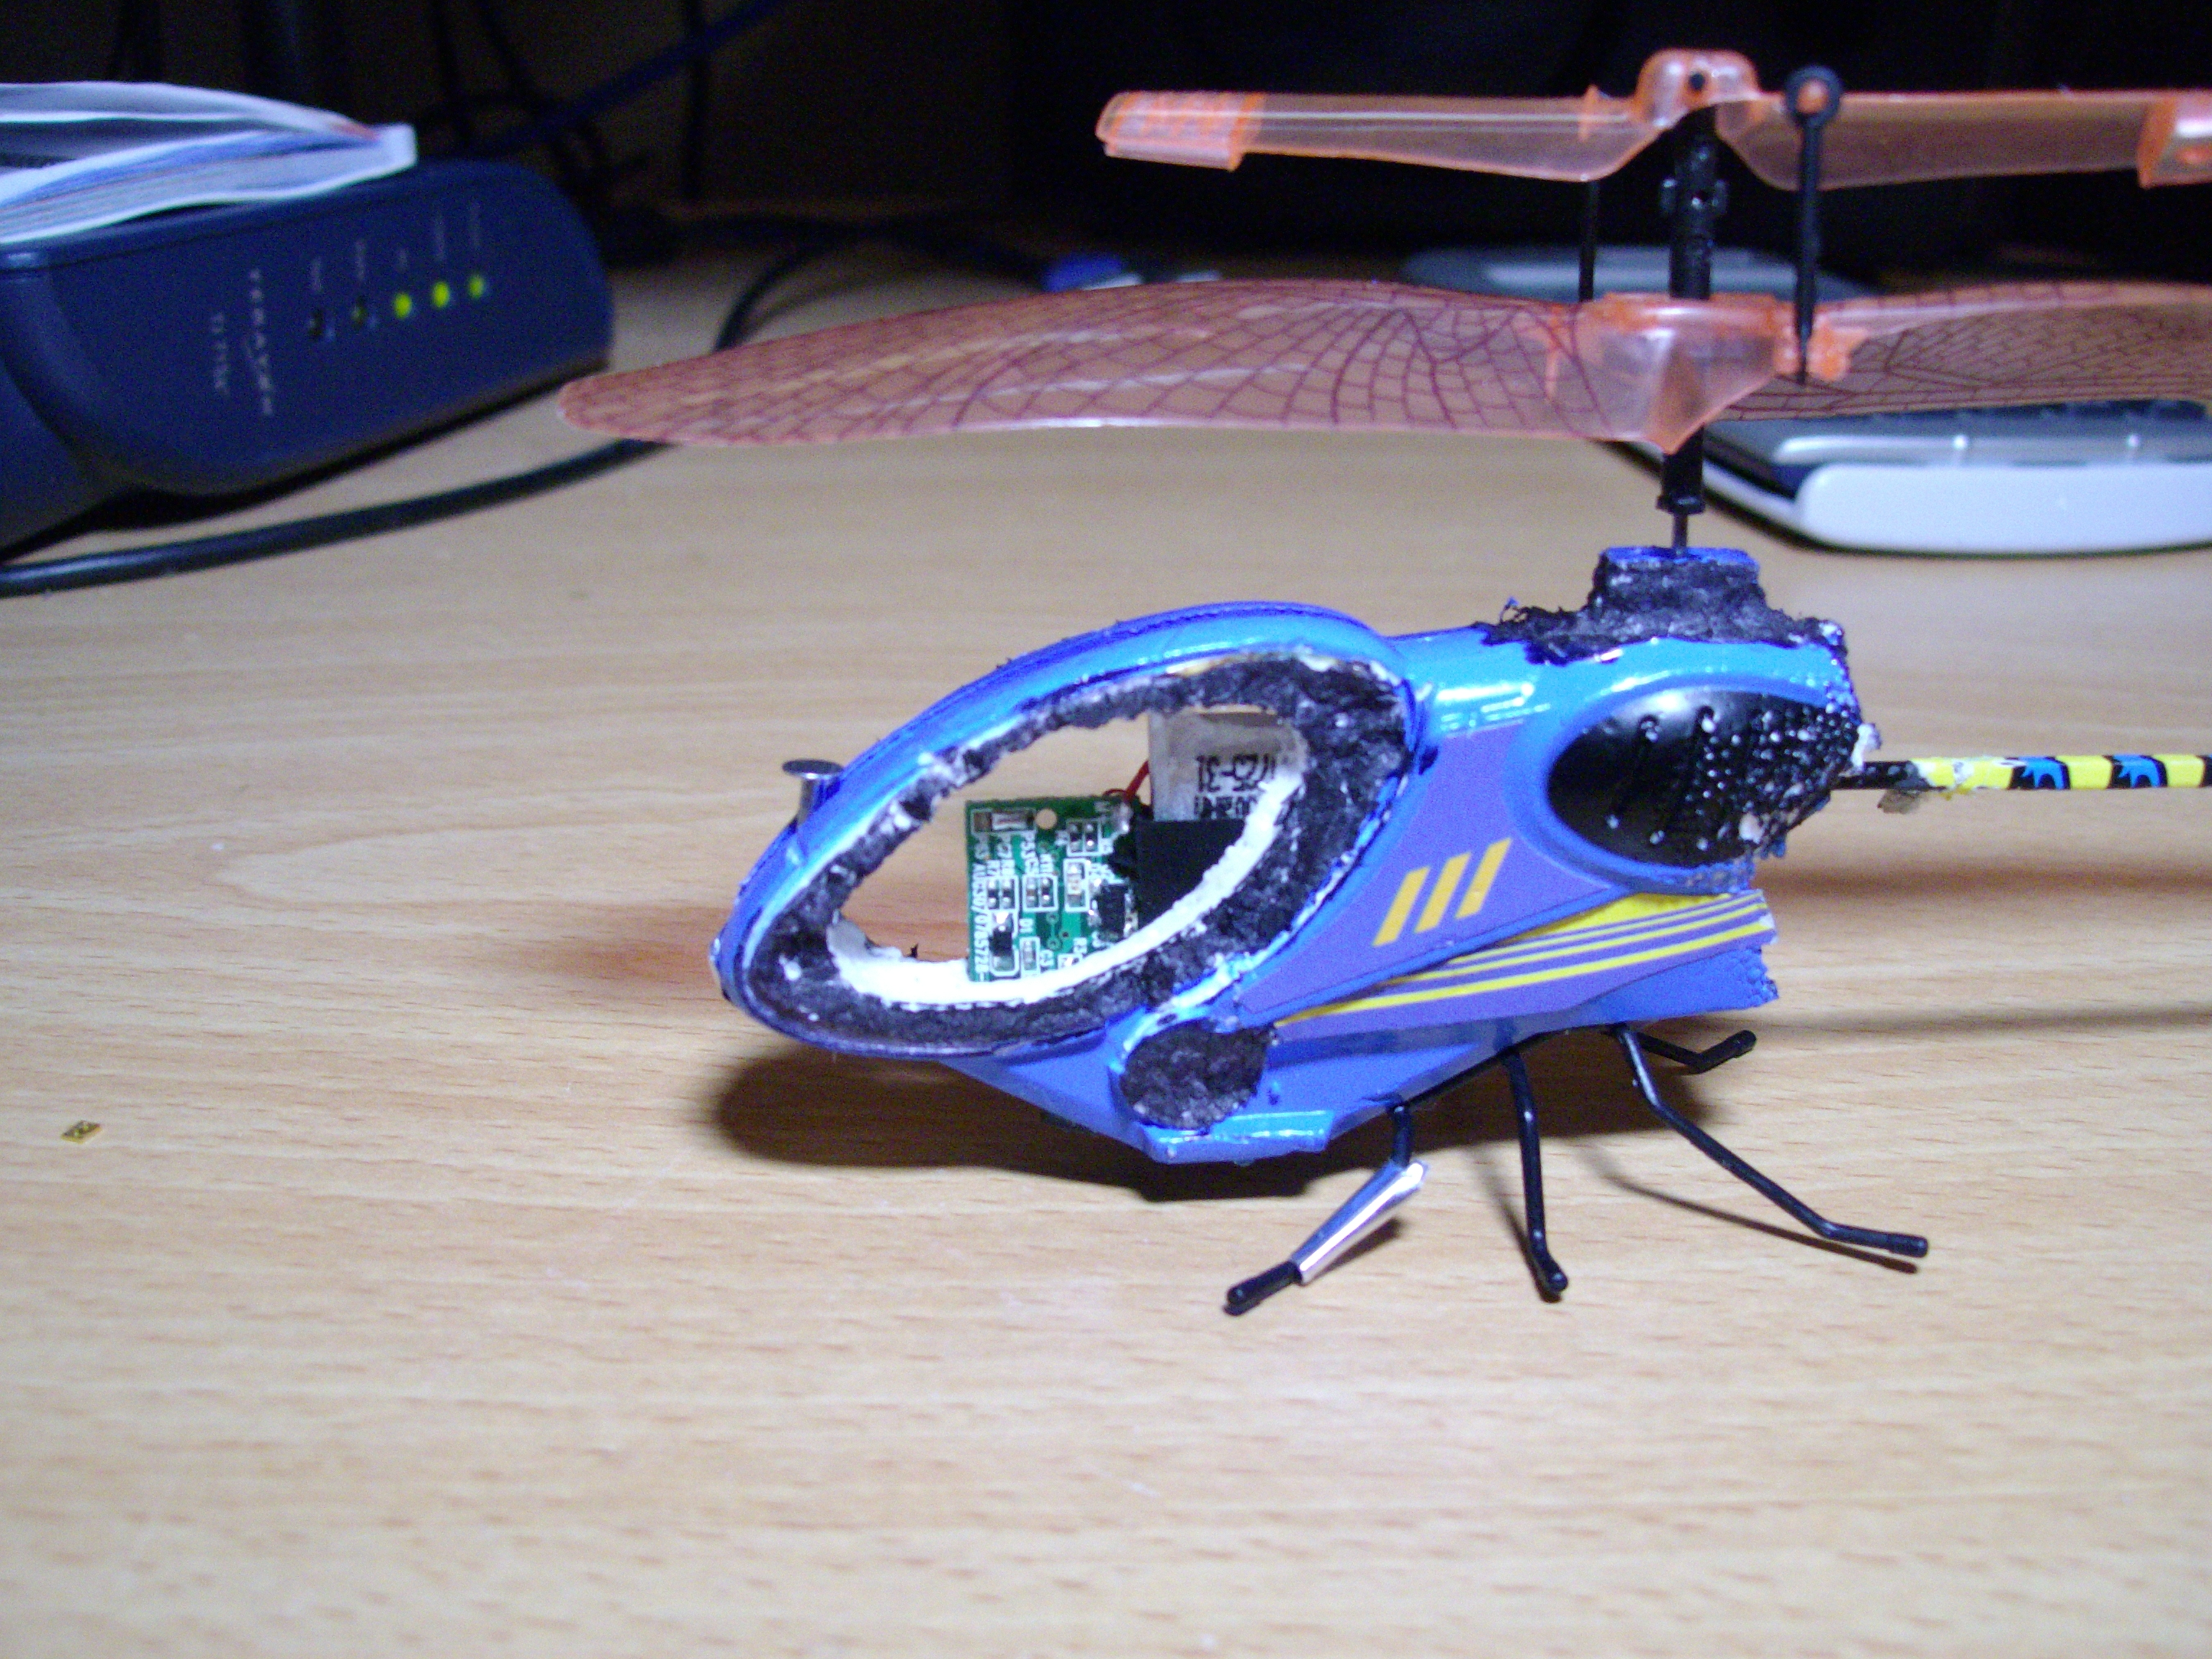 Picture of More Flight Time and Altitude From an Air Hog Helicopter.